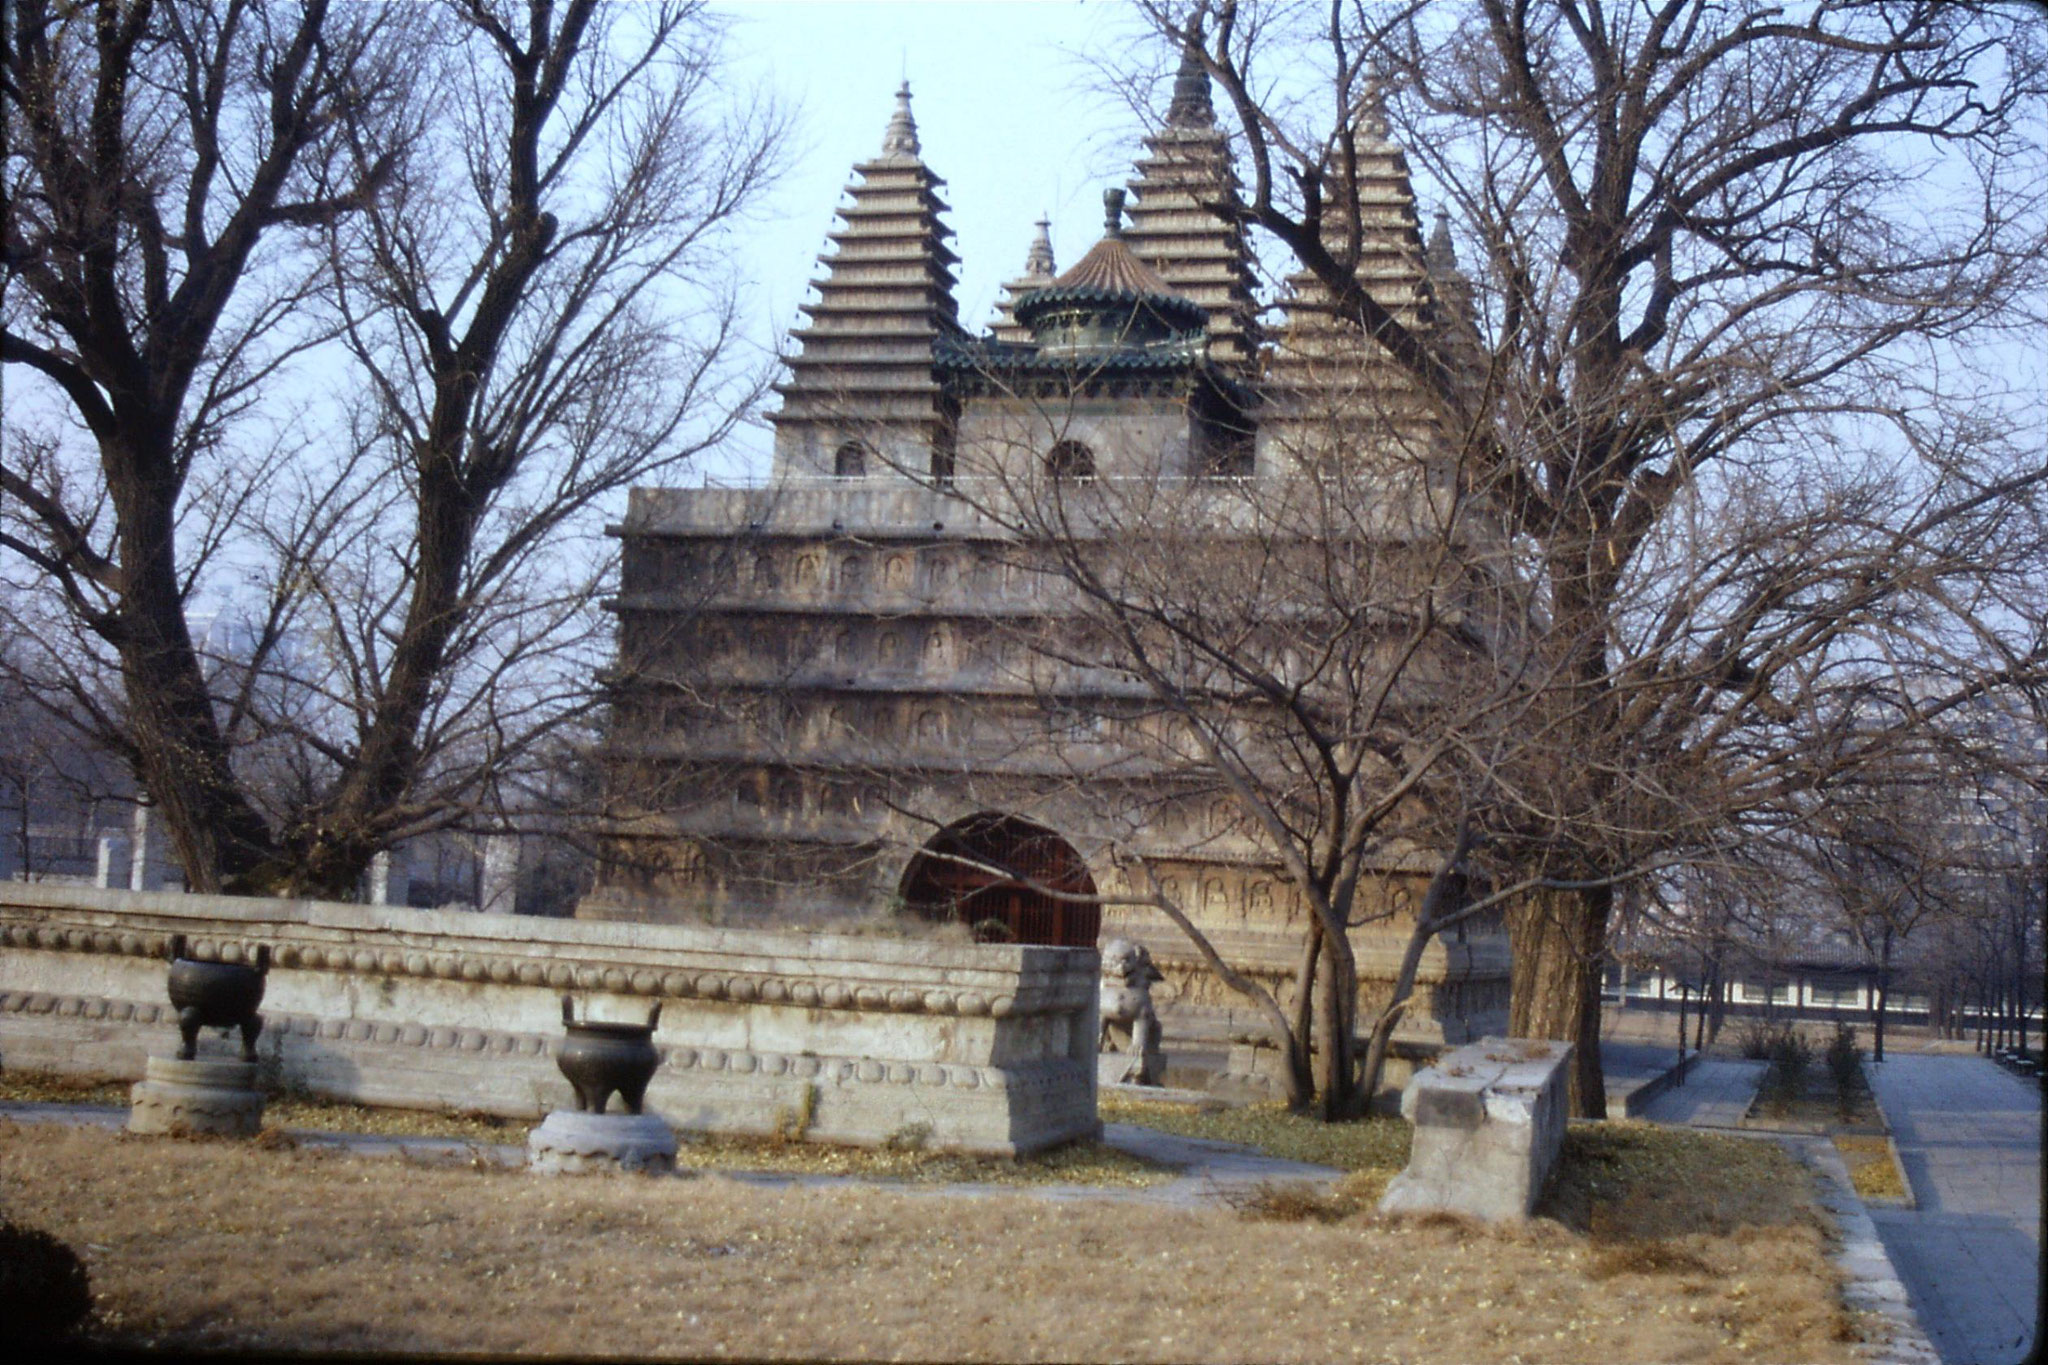 29/11/1988: 11:Wutasi Five Pagoda Temple near zoo